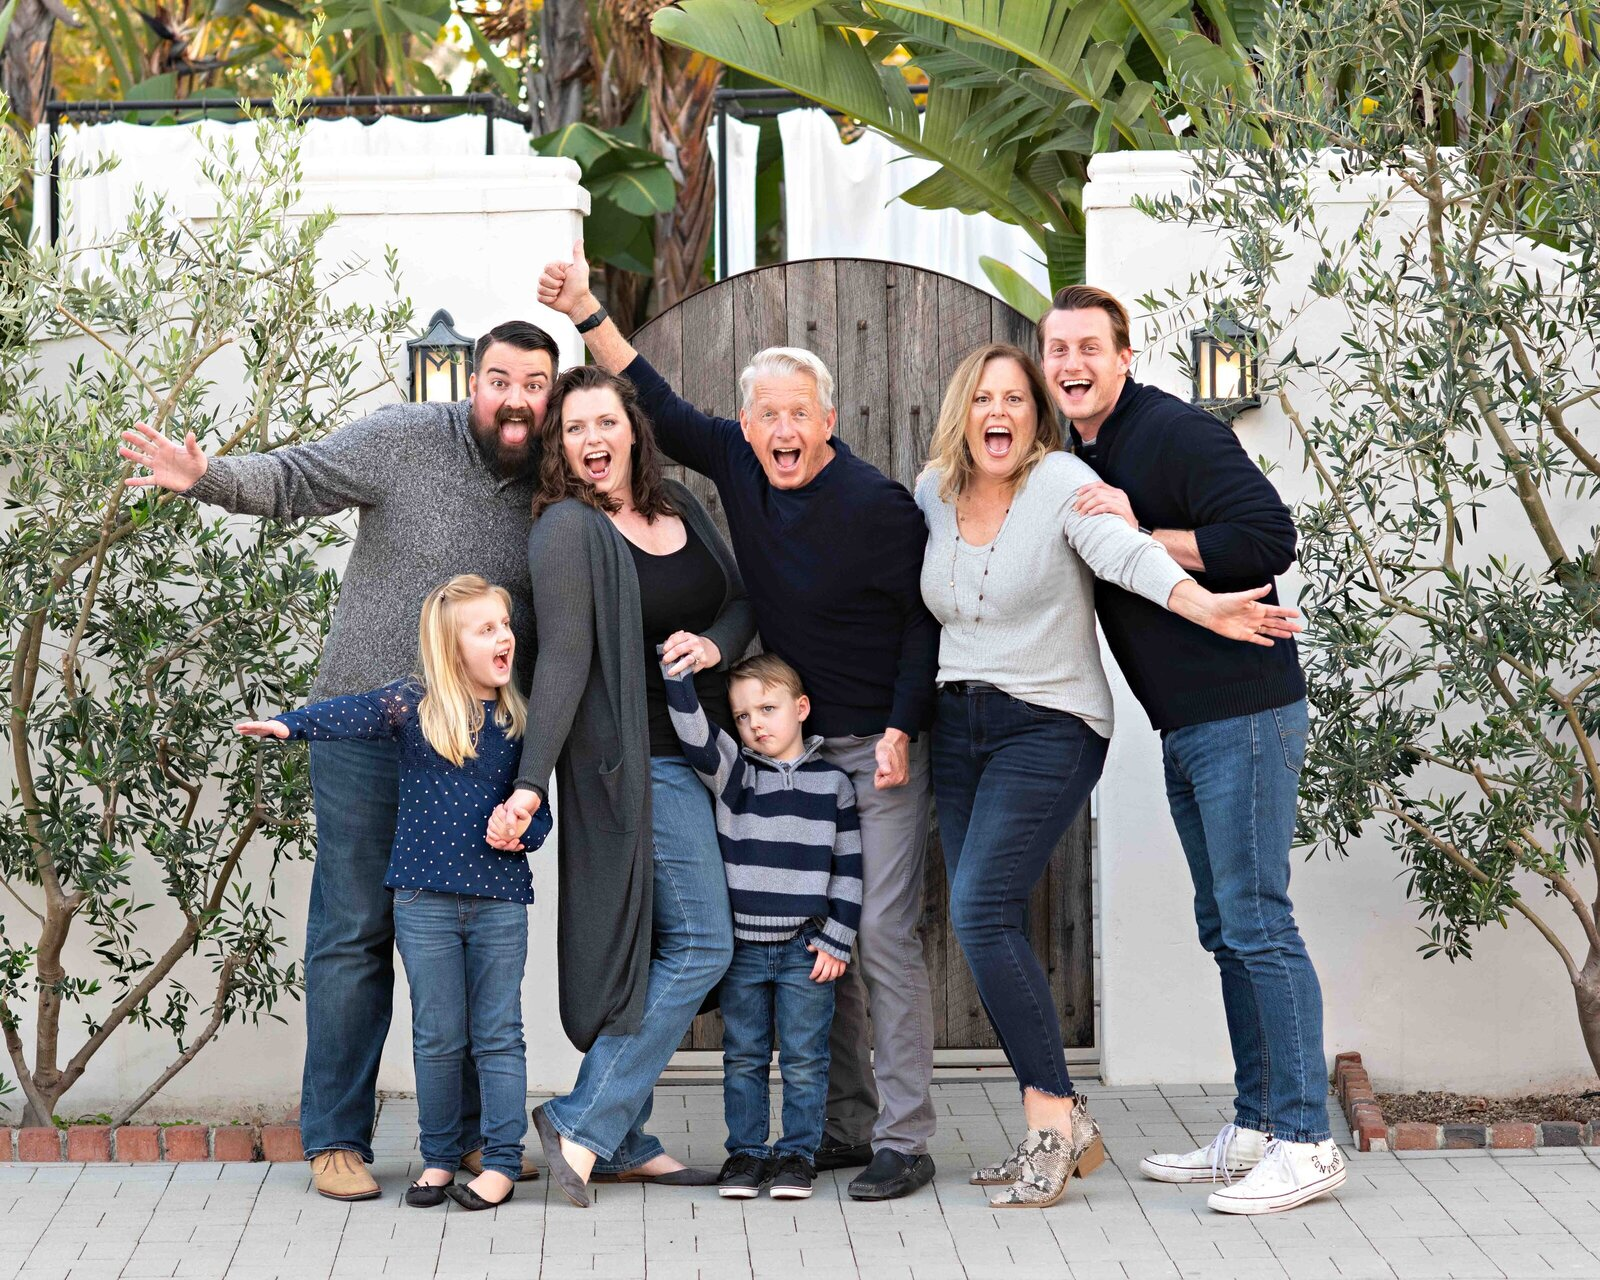 Maria-McCarthy-Photography-family-portrait-fun